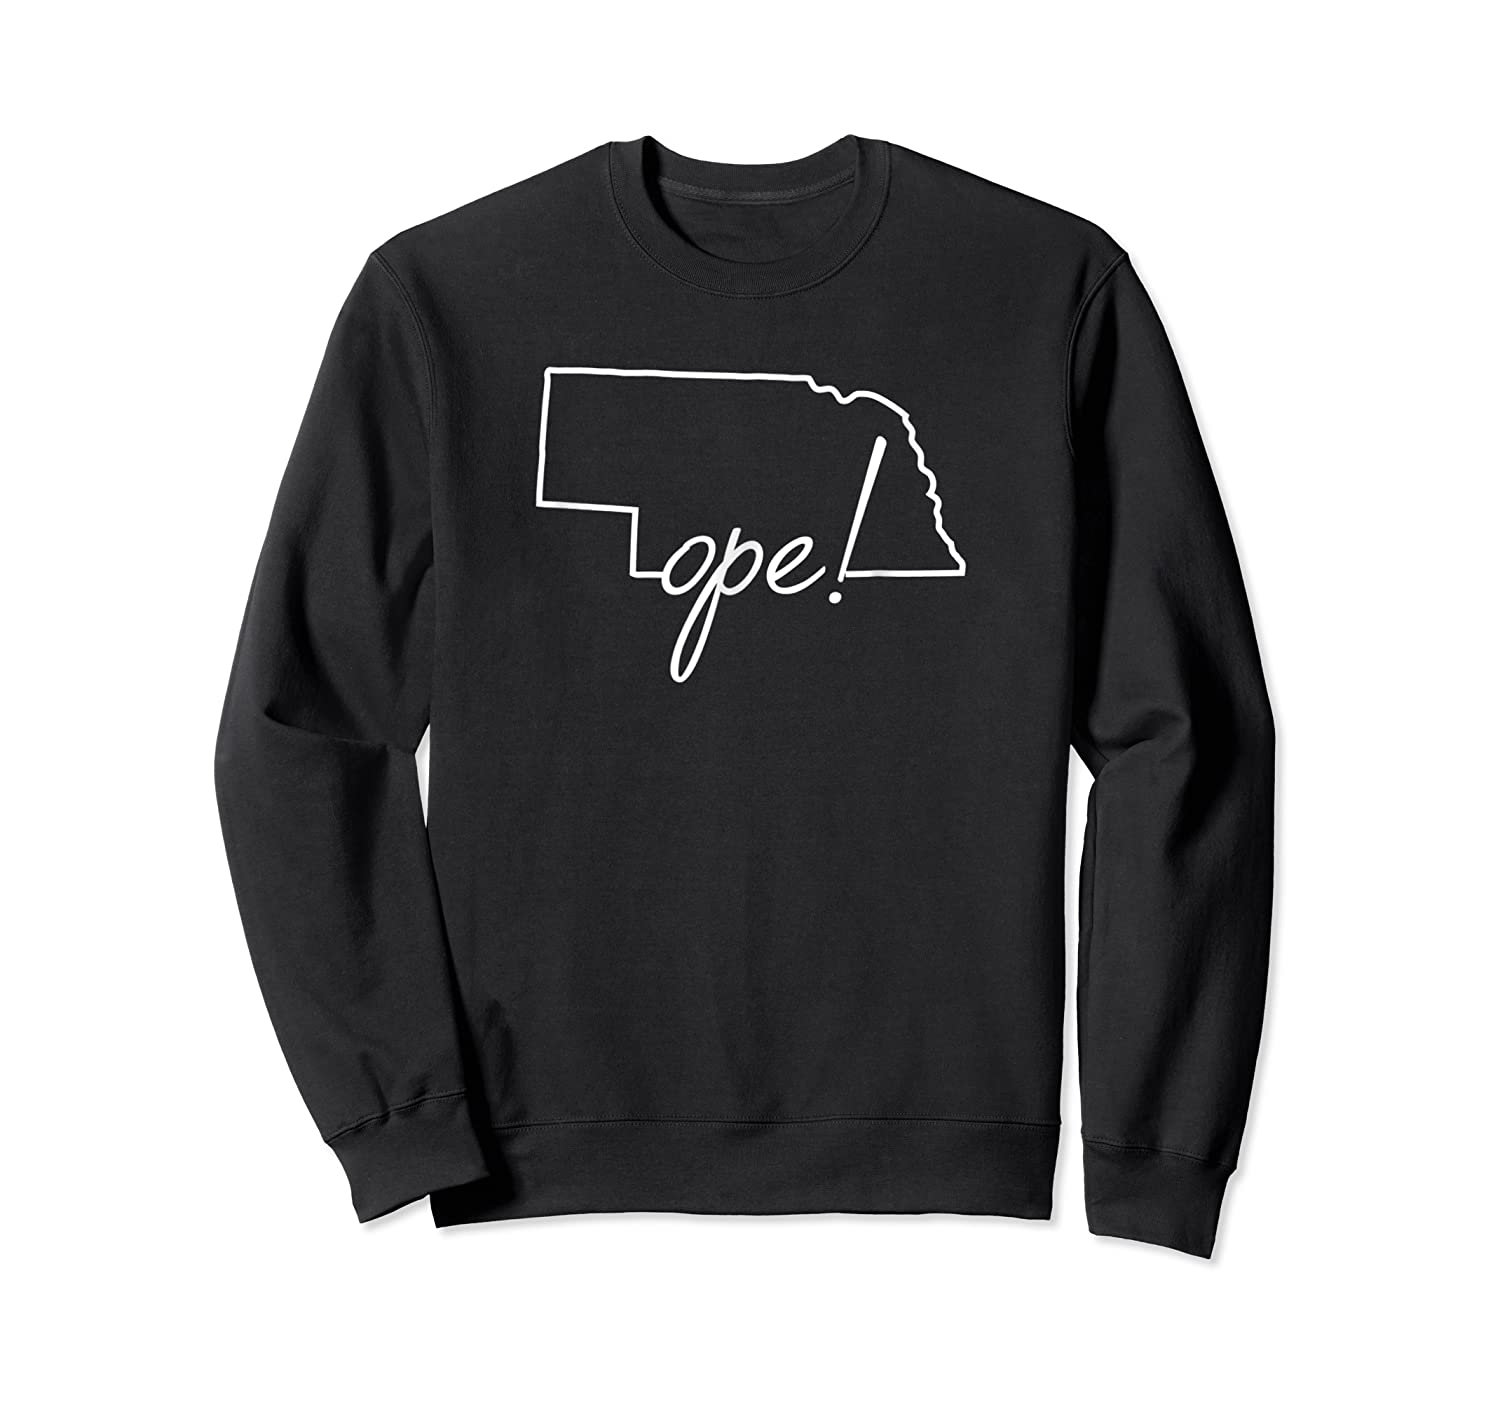 Ope Nebraska Shirt Funny Midwest Culture Phrase Saying Gift Crewneck Sweater